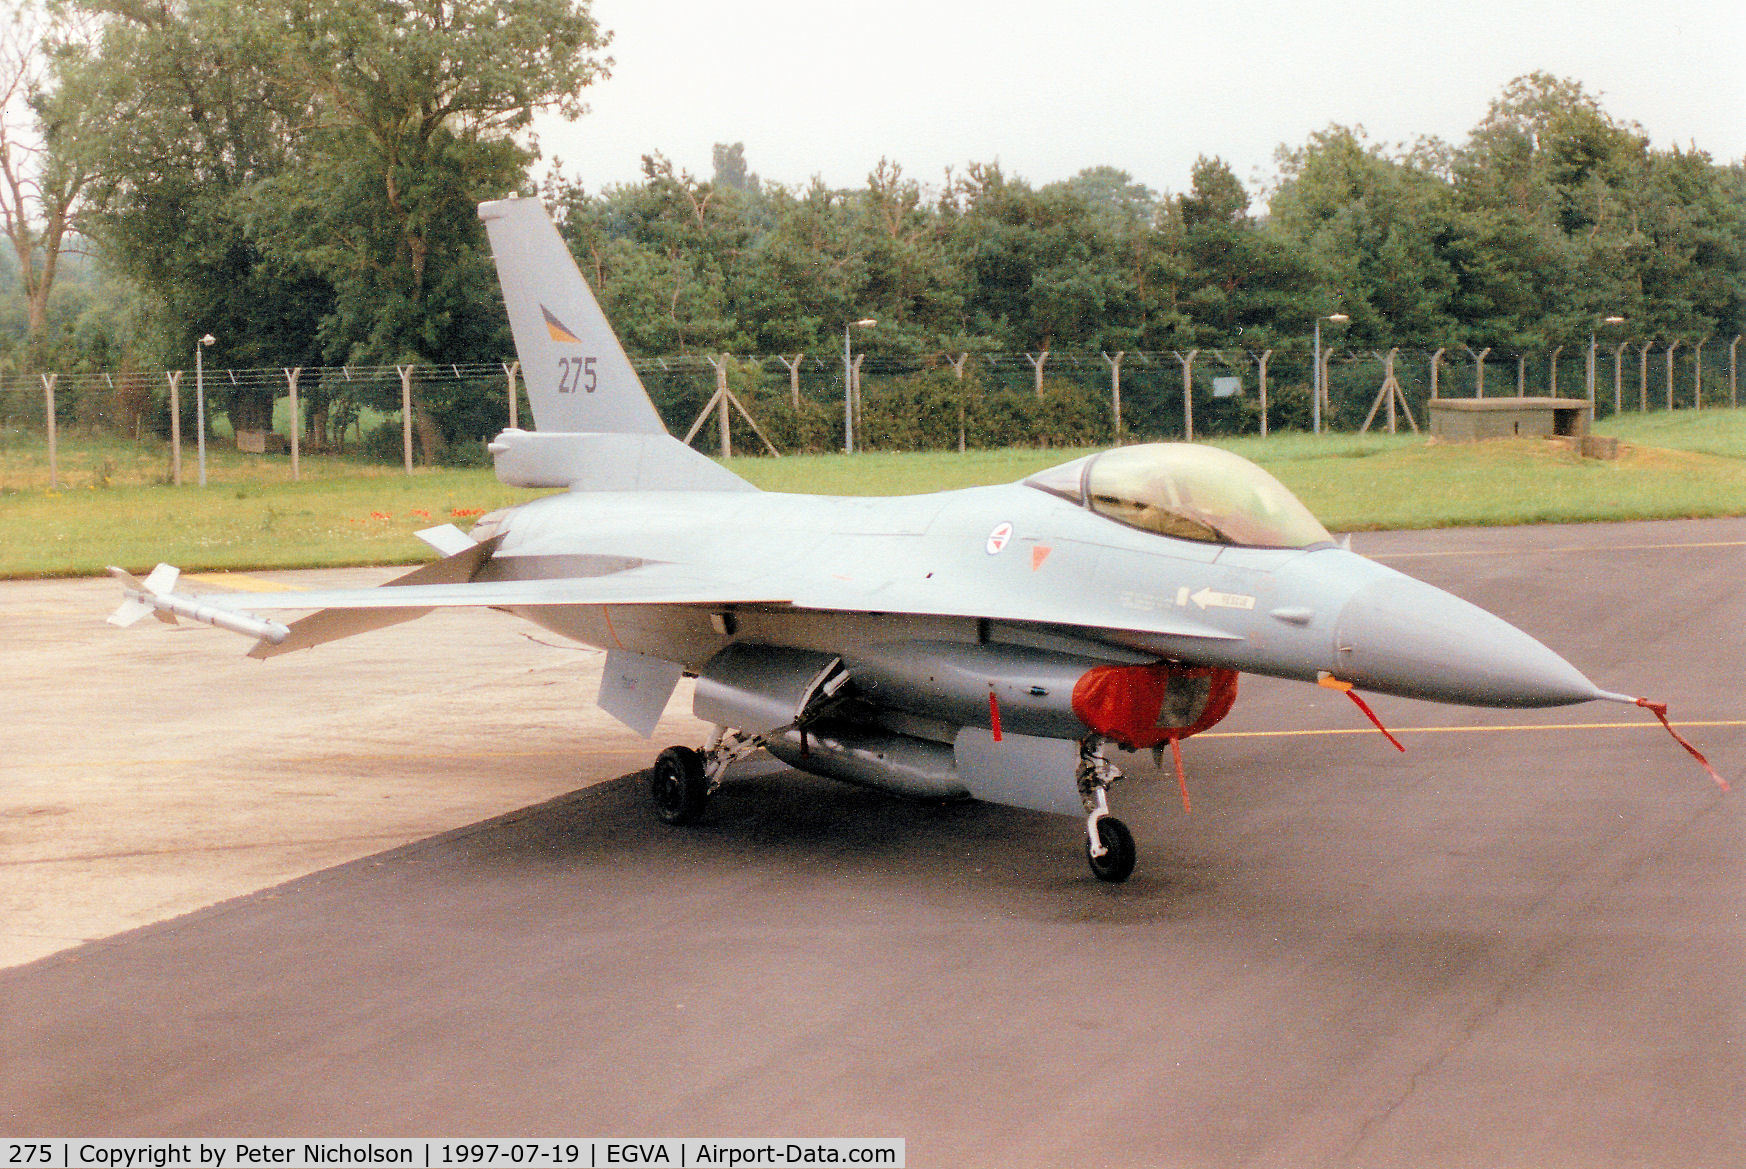 275, 1980 General Dynamics F-16A Fighting Falcon C/N 6K-4, F-16A Falcon, callsign Norwegian 5087 Bravo, of 332 Skv Royal Norwegian Air Force on the flight-line at the 1997 Intnl Air Tattoo at RAF Fairford.